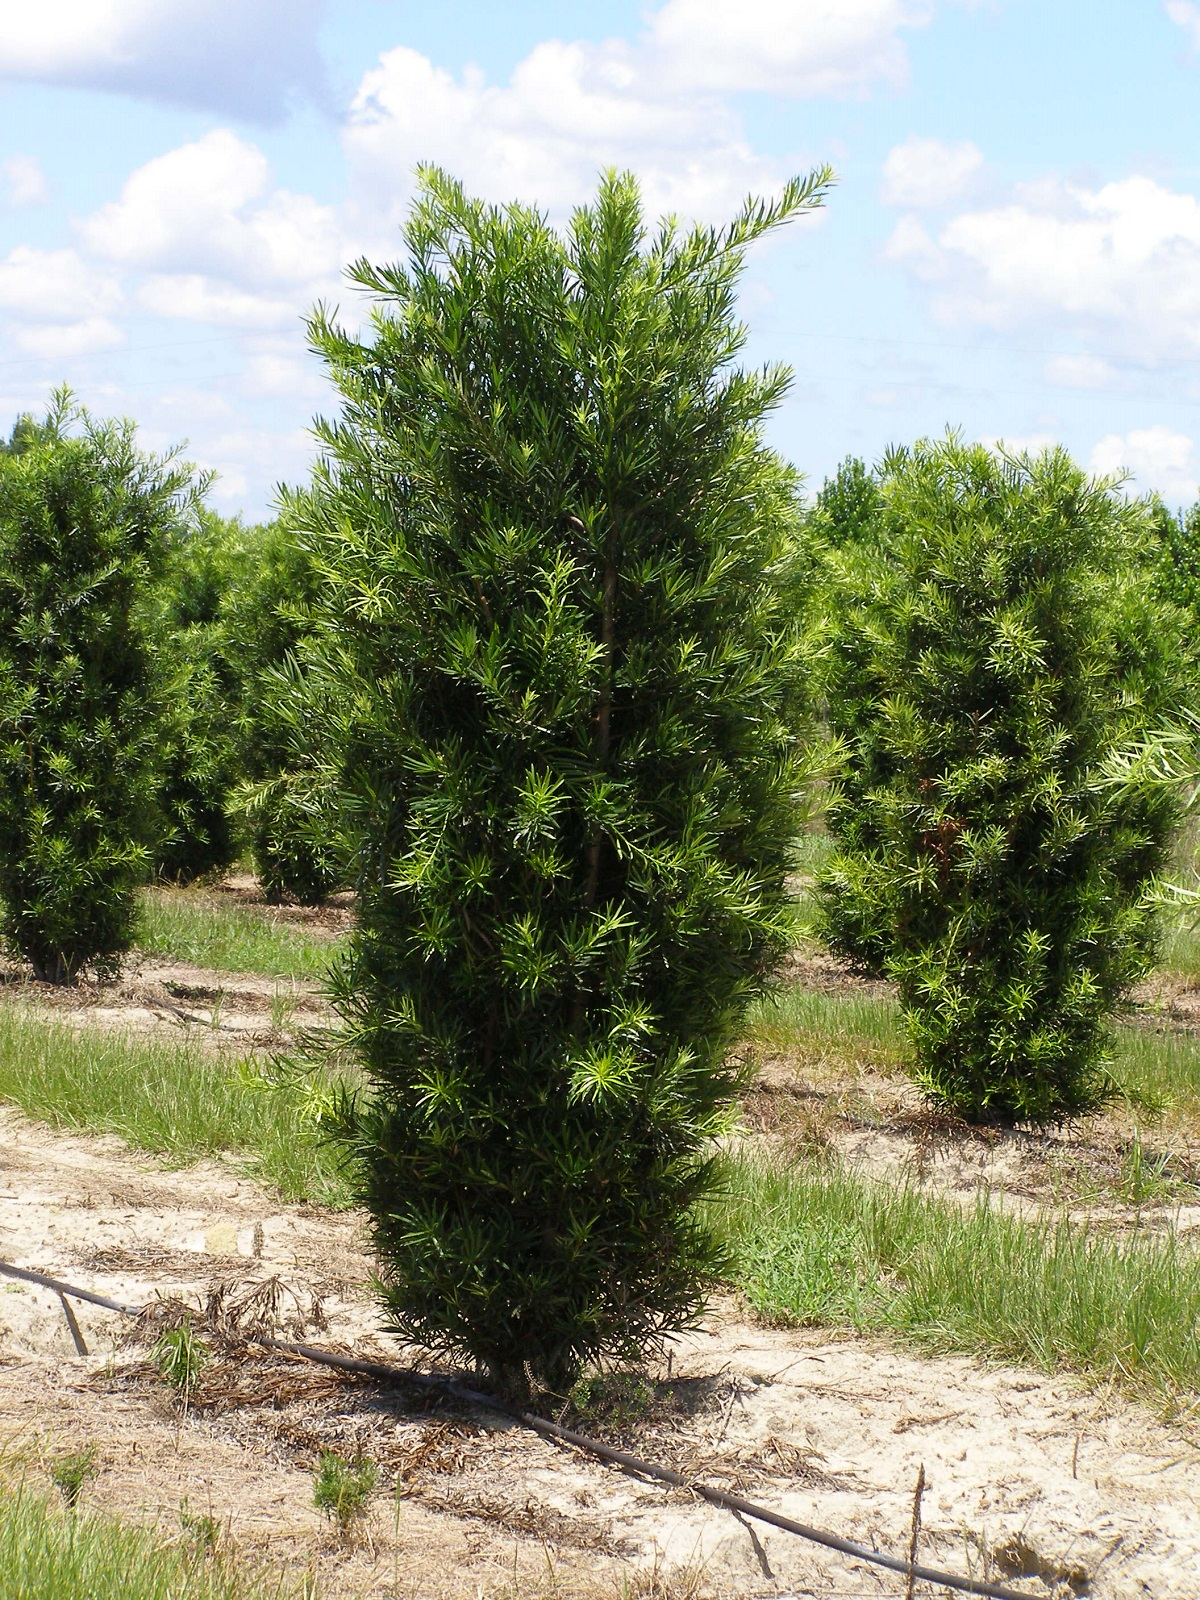 Wagon Hammock Nursery Plant and Tree Availability List Lovely Green Shrub Plants and Trees